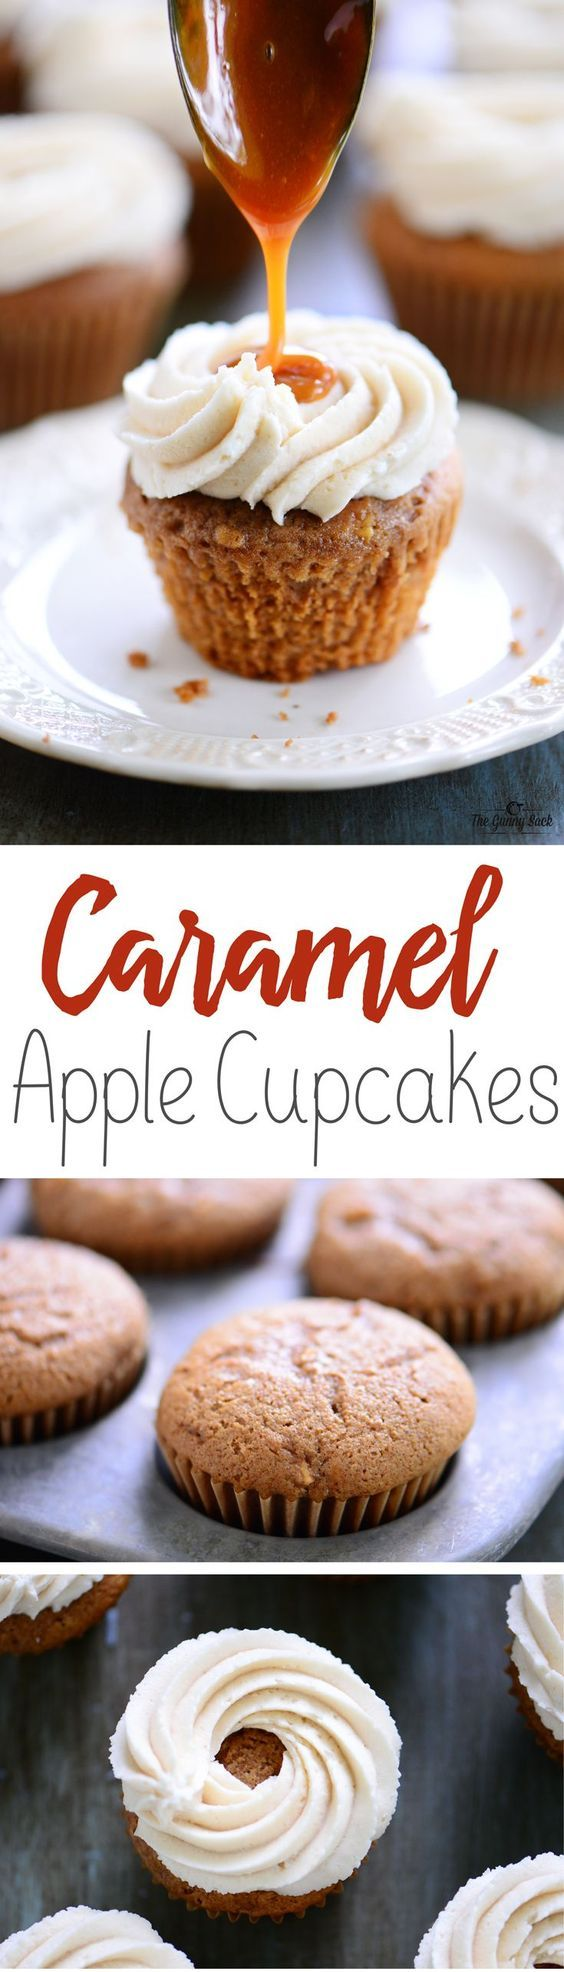 Mouthwatering Fall Dessert Recipe: Caramel Apple Cupcakes made with easy apple cupcakes cream cheese buttercream frosting and warm caramel drizzled on top.